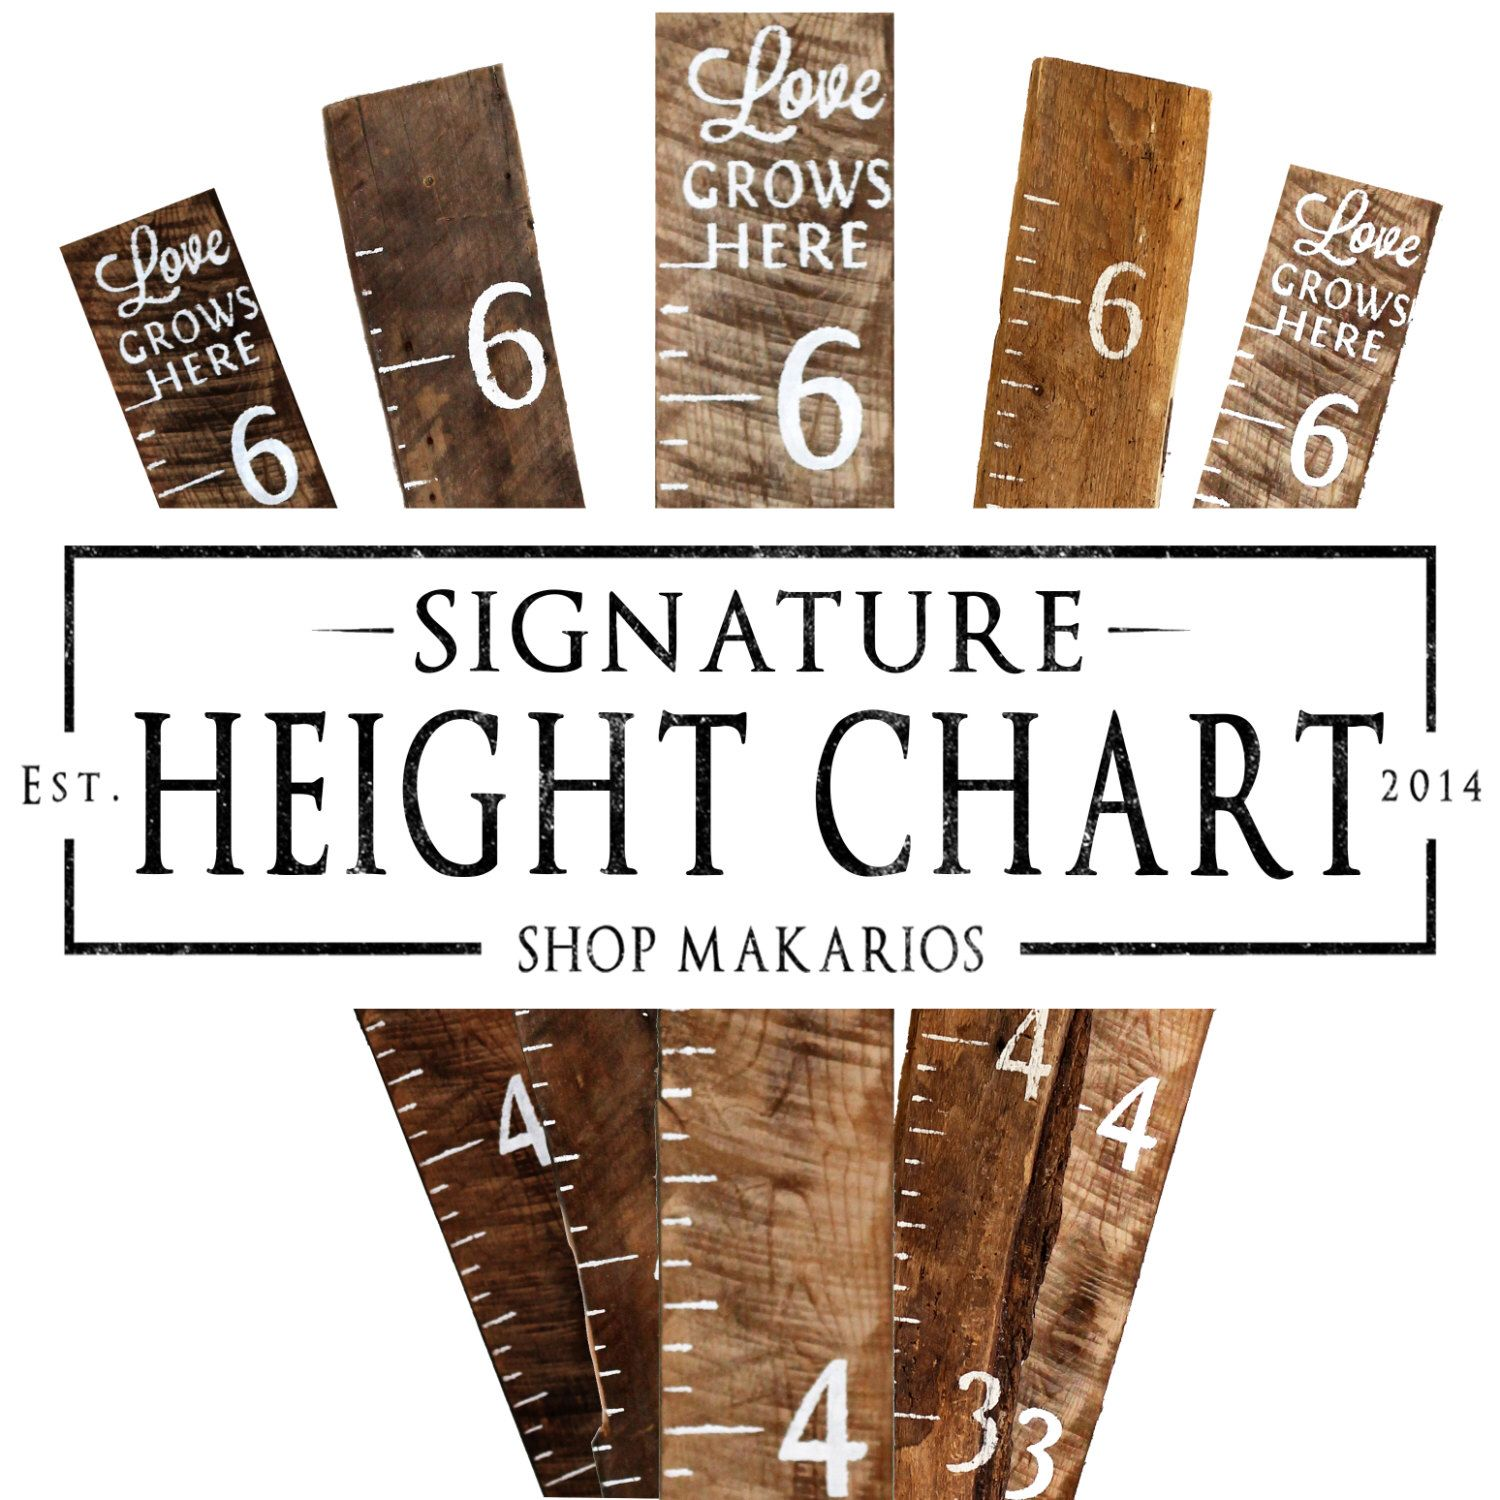 Wooden growth chartowth ruleowth chartwooden growth ruler6 wooden growth chartowth ruleowth chartwooden growth ruler6 foot geenschuldenfo Choice Image